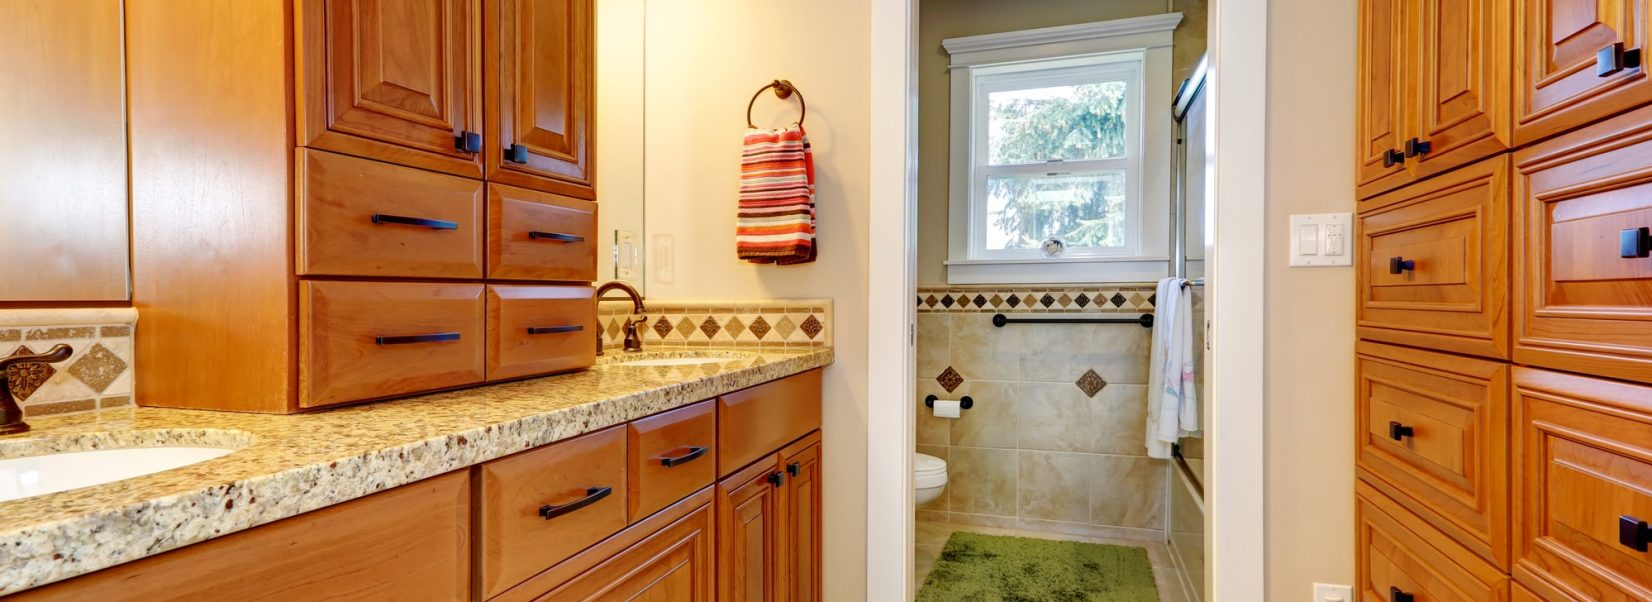 Choosing Hardware How To Get A Handle On Your Bathroom Cabinets